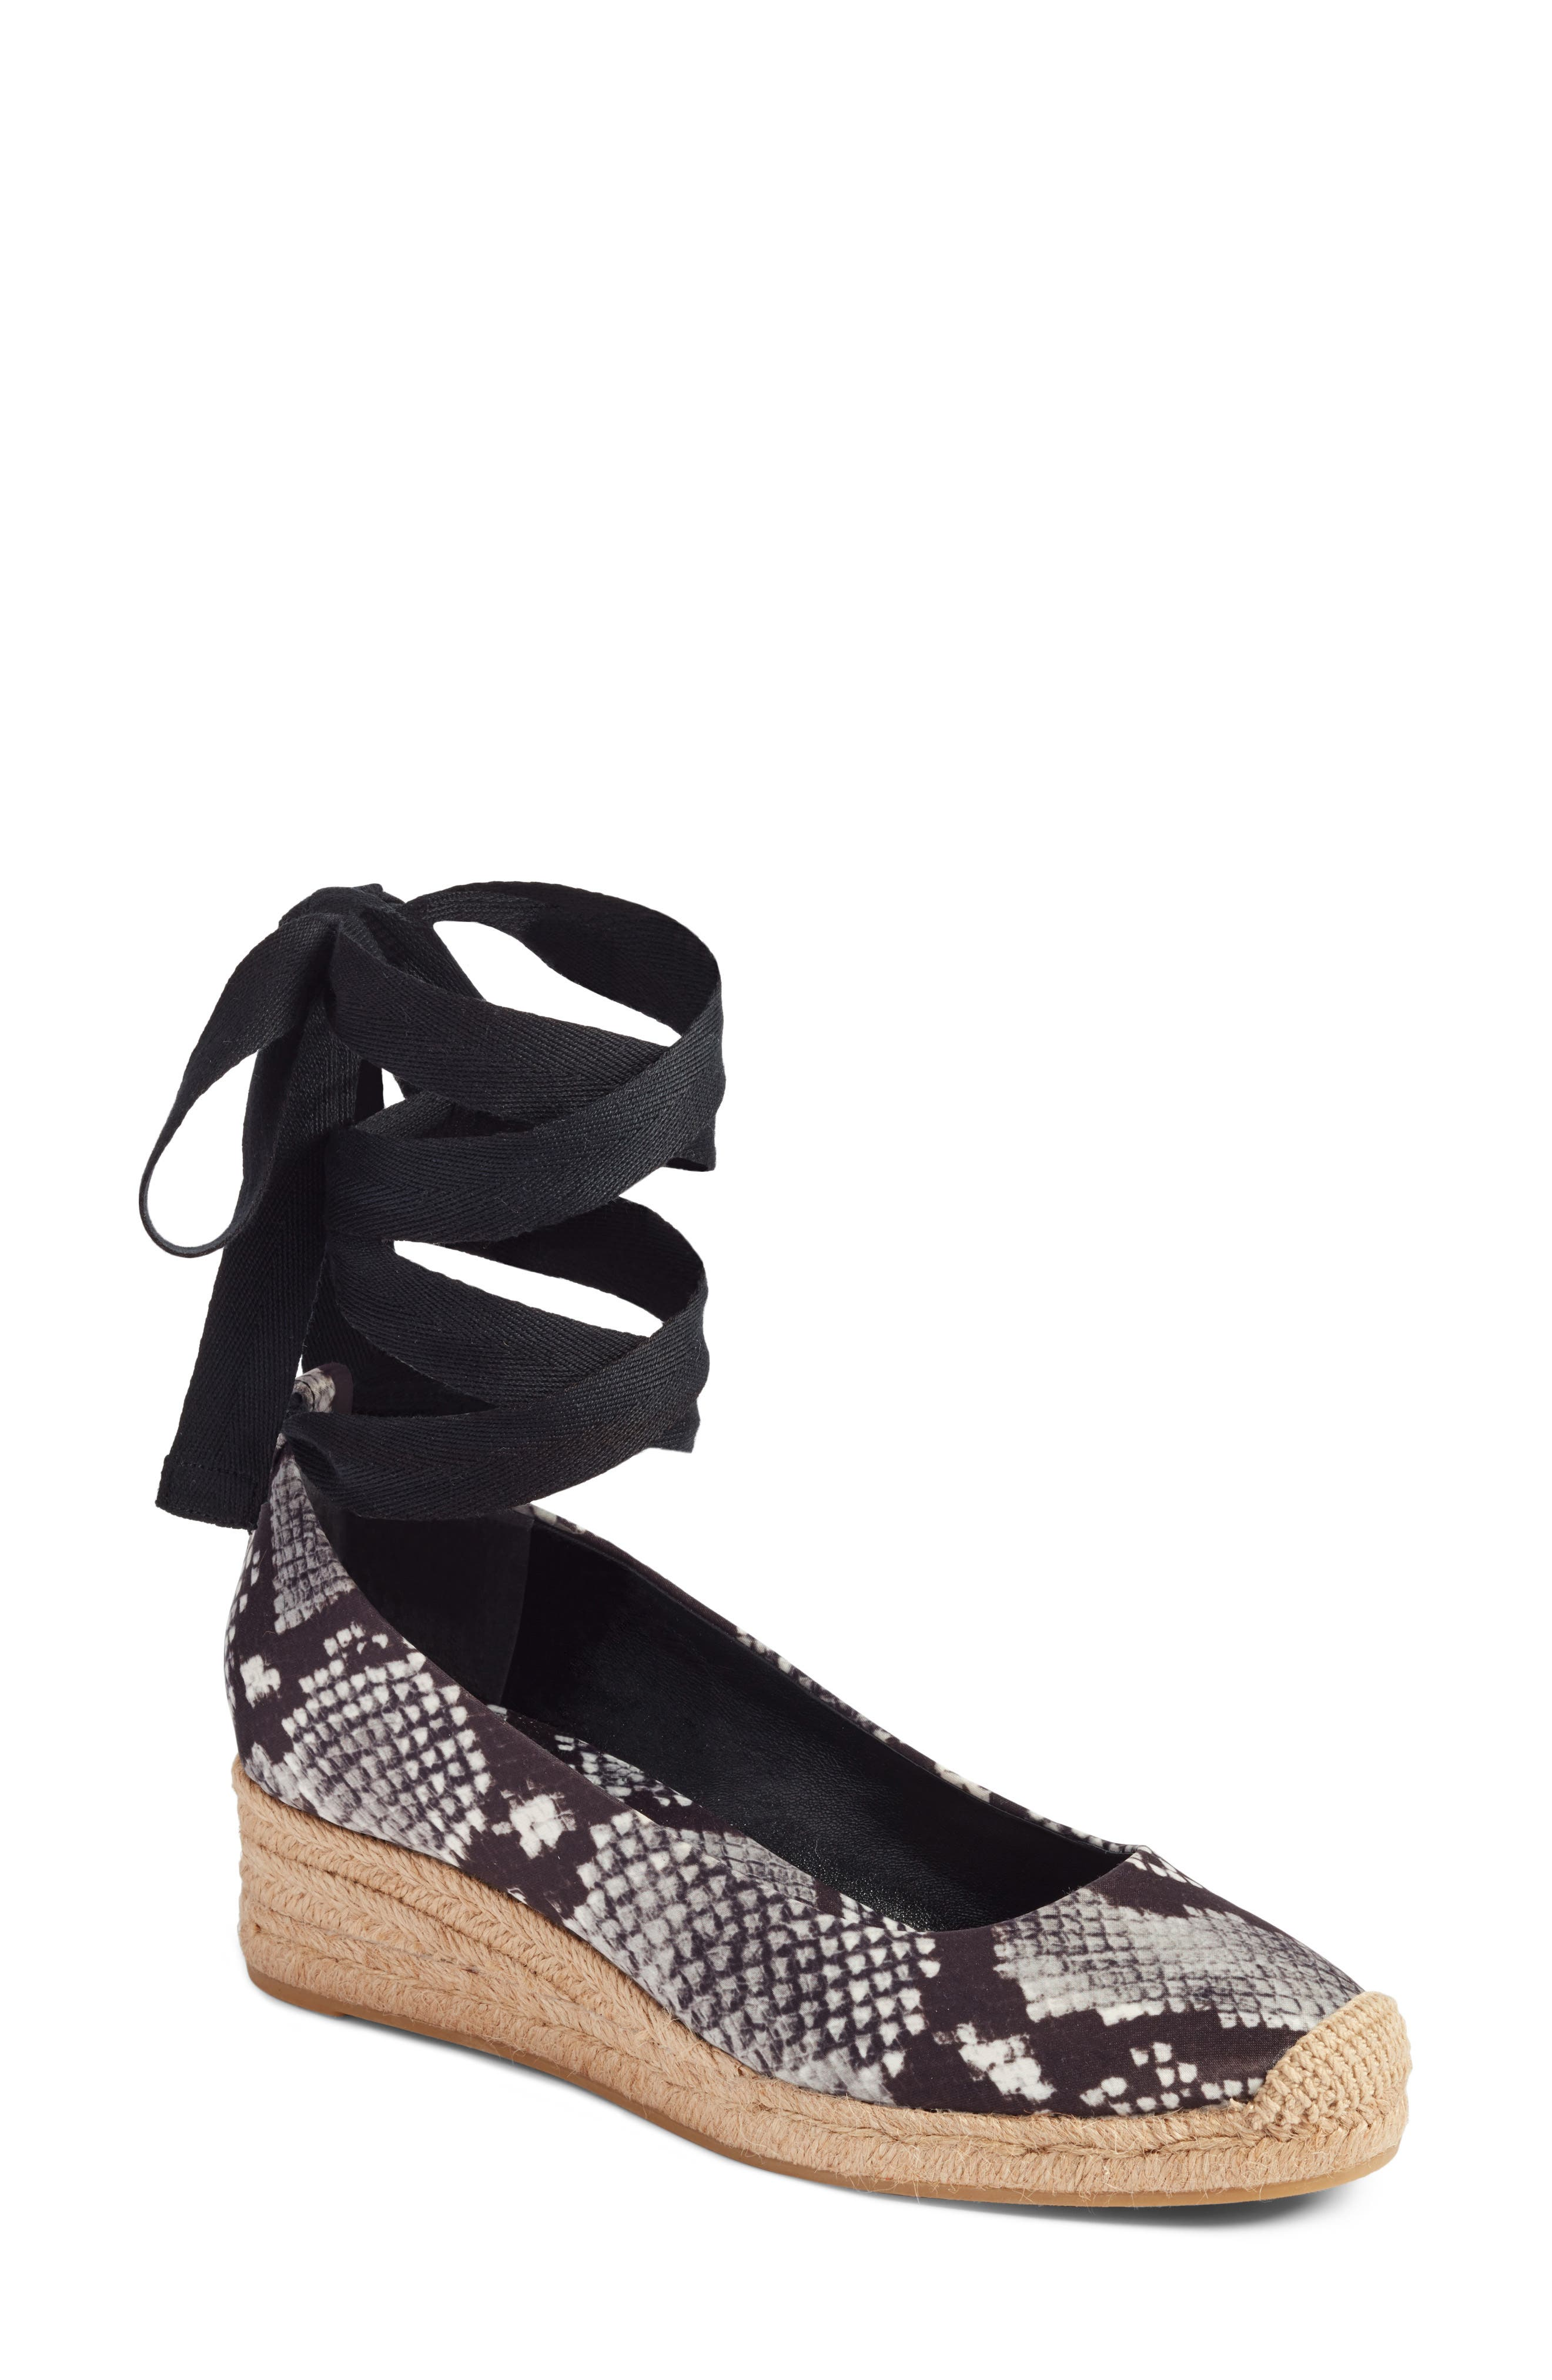 Alternate Image 1 Selected - Tory Burch Heather Ankle Wrap Espadrille Wedge (Women)